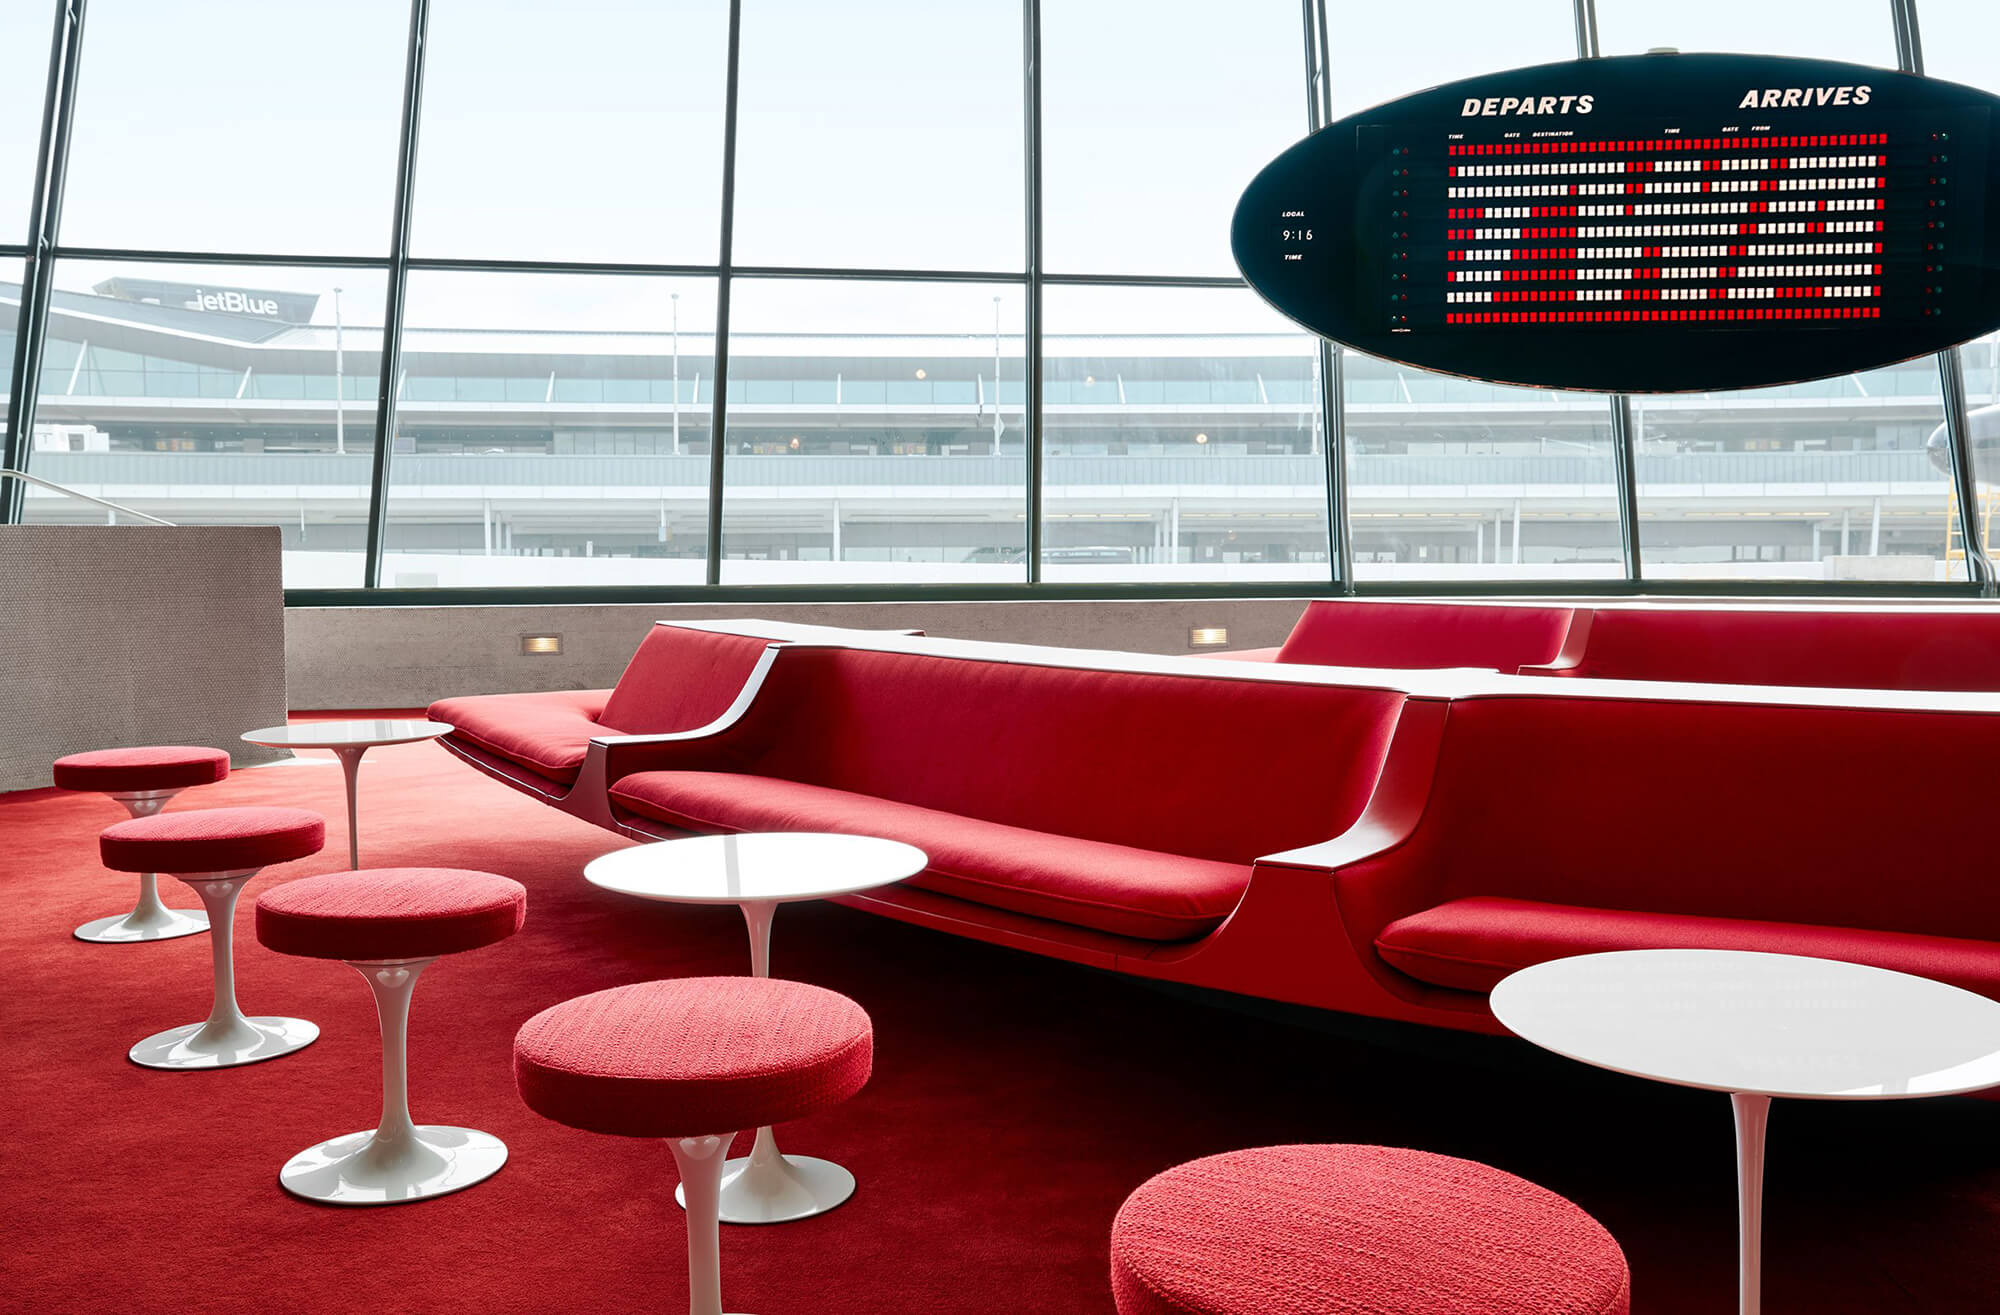 The iconic Sunken Lounge at the TWA Hotel.